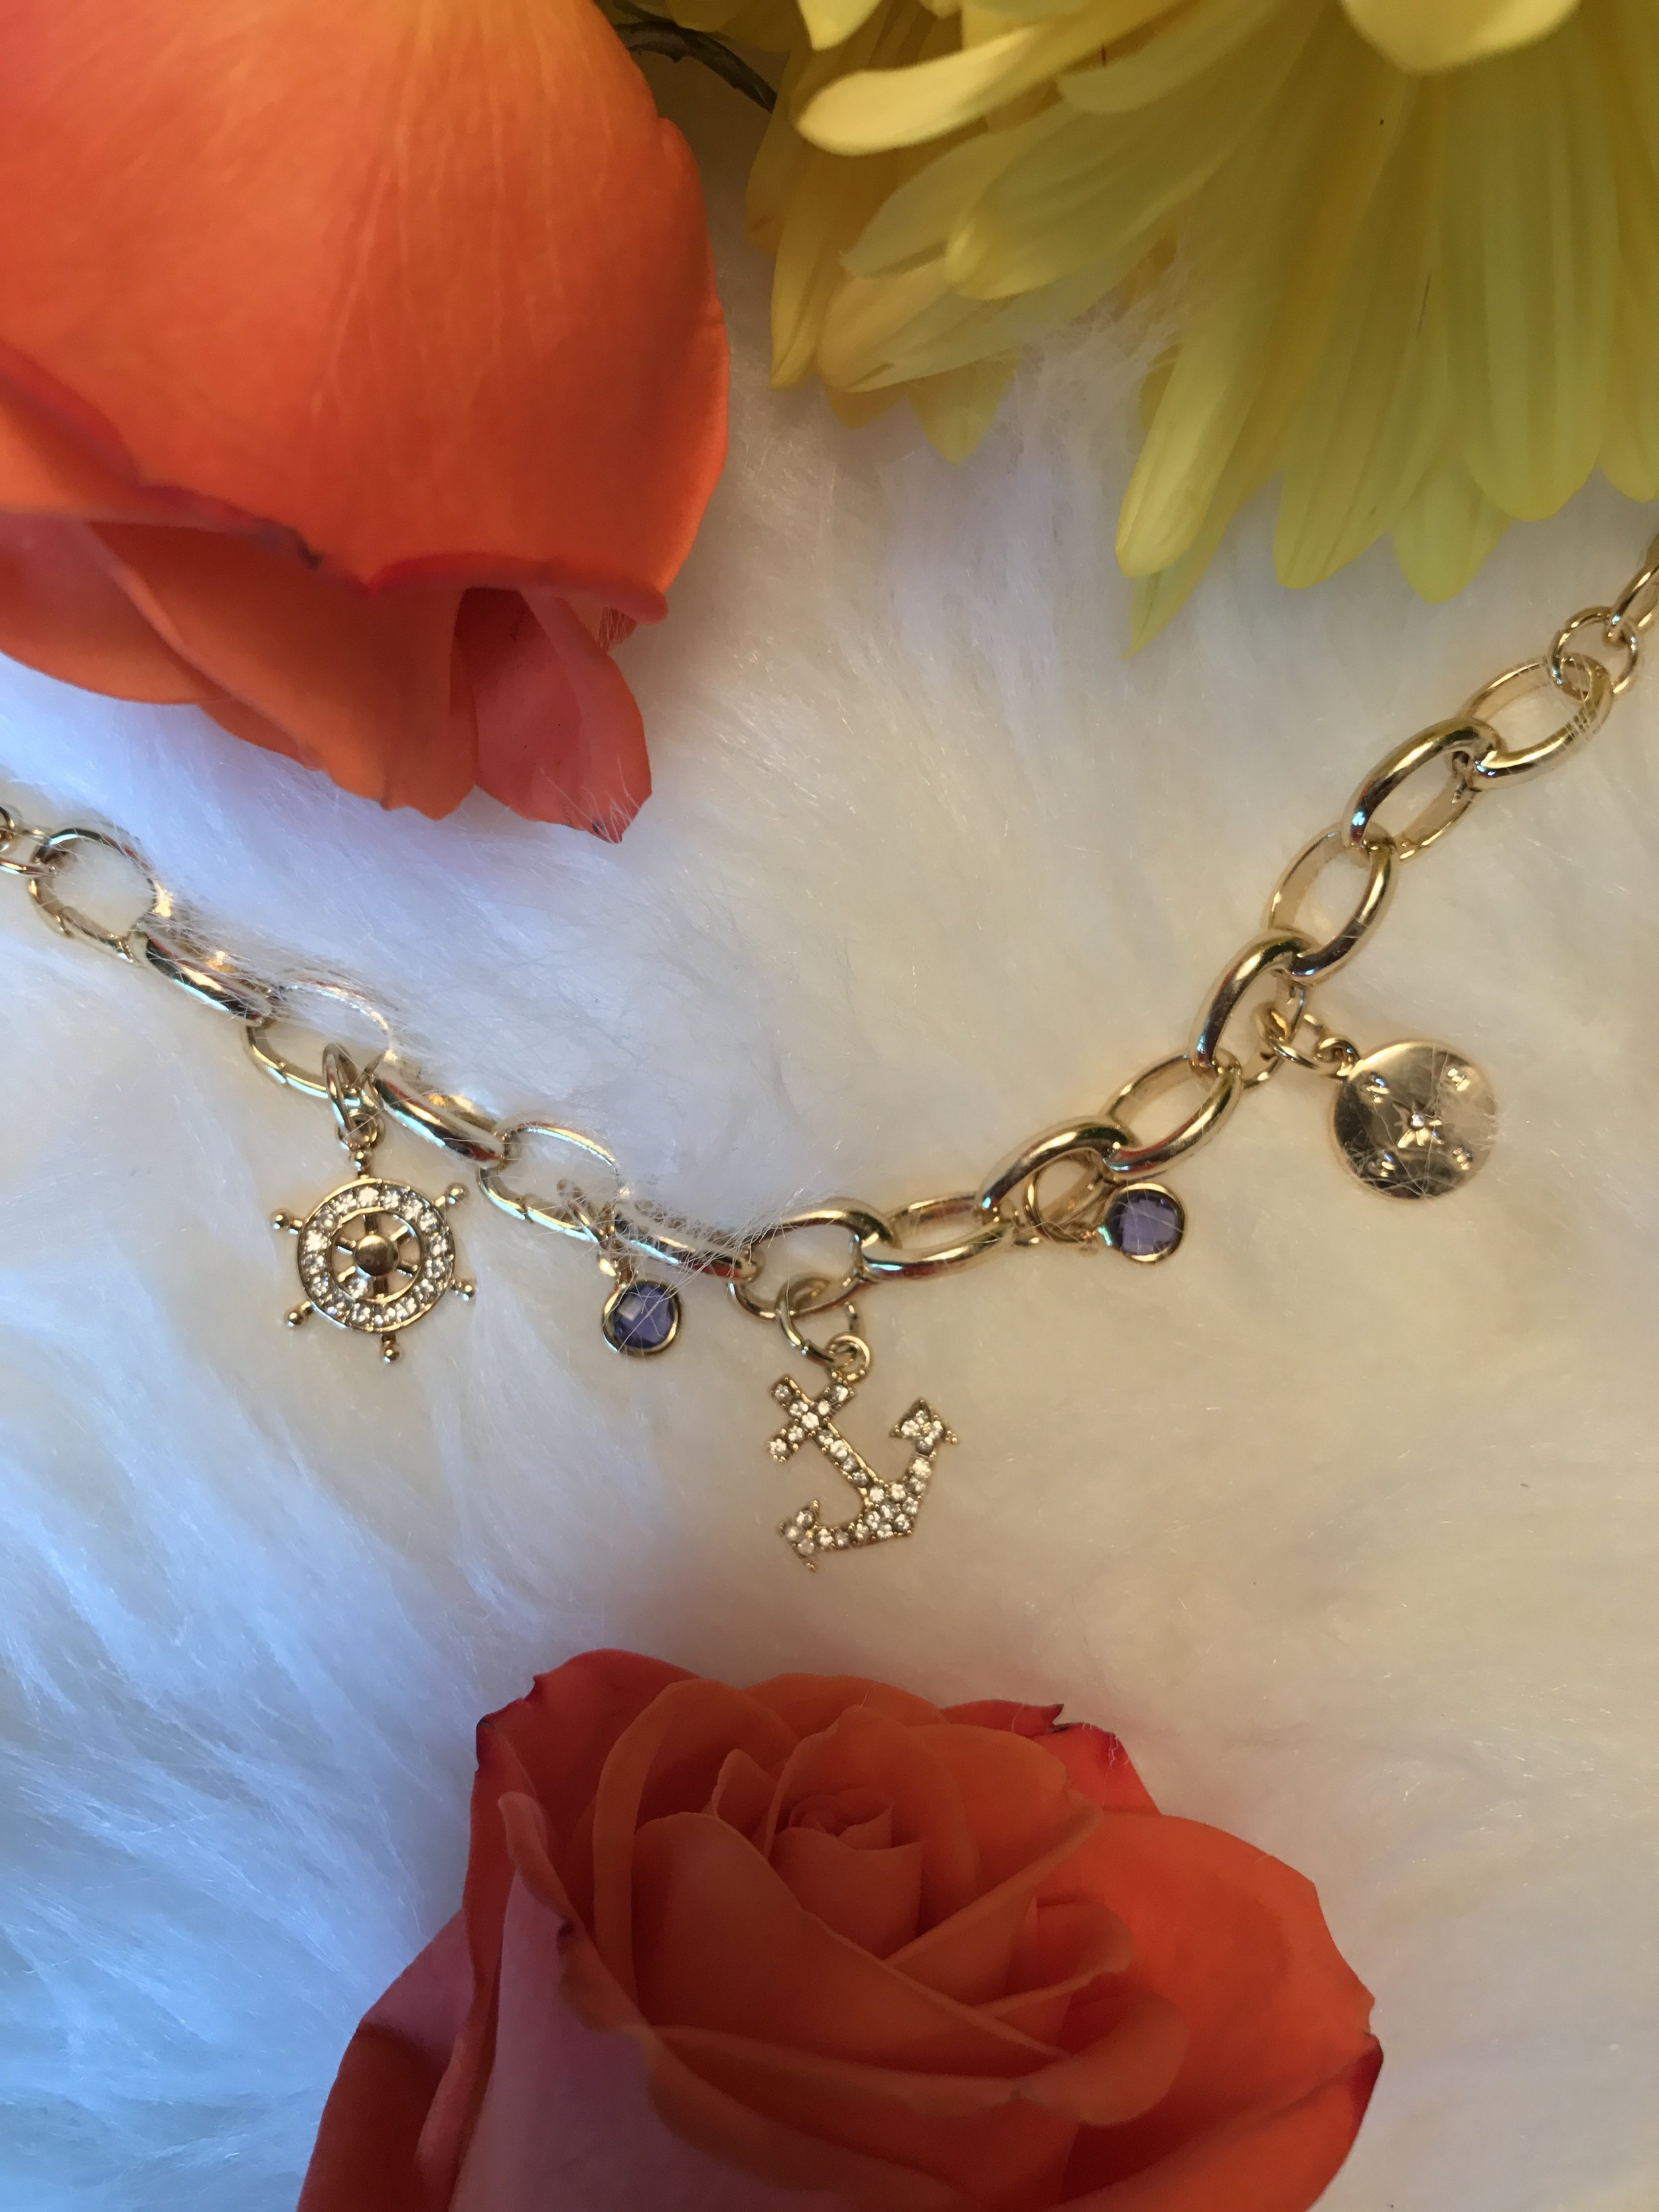 """This is the """" Hope   Anchors   the   Soul   Classic   Charm   Bracelet """" from  Lovita   &   Co . which I first showed you  here  when I wore my """" Love   to   Shop   Classic   Charm   Bracelet ."""" I promise you will see them both again and I will tell you why the anchor symbol has special meaning to me ( it's not just because I'm a RI girl) !"""